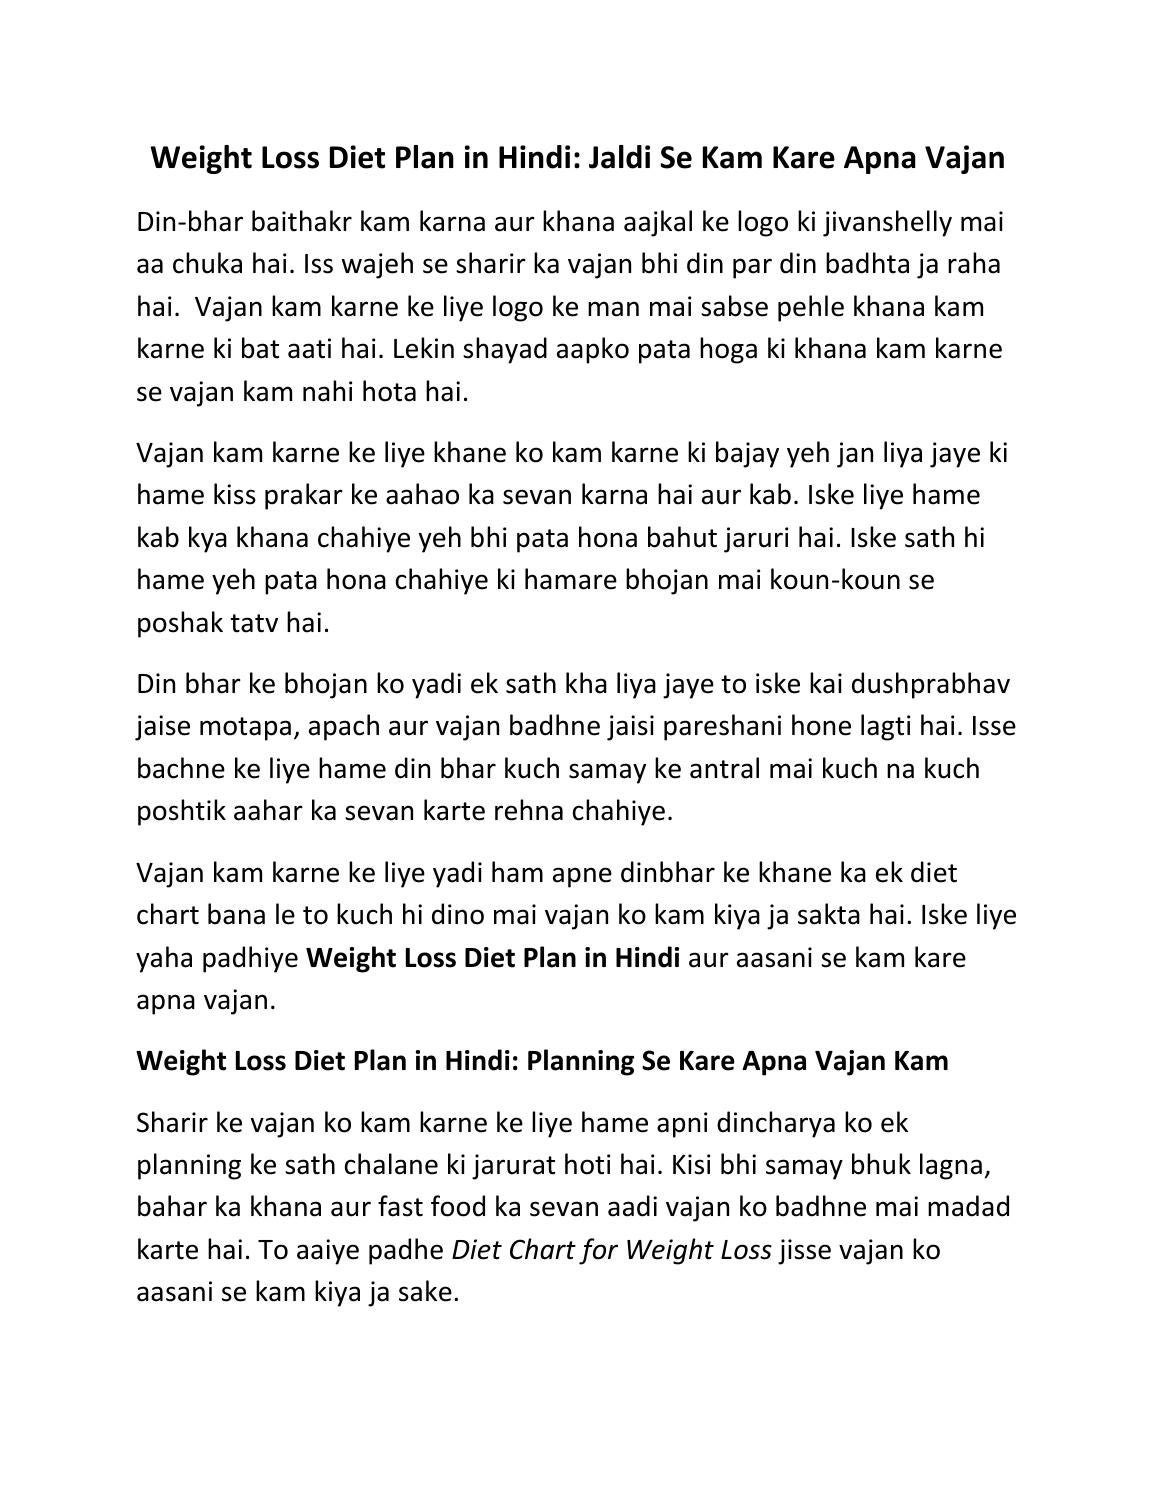 Weight loss diet plan in hindi panning se kam kare apna vajan by weight loss diet plan in hindi panning se kam kare apna vajan by shradhha choudhary issuu nvjuhfo Image collections